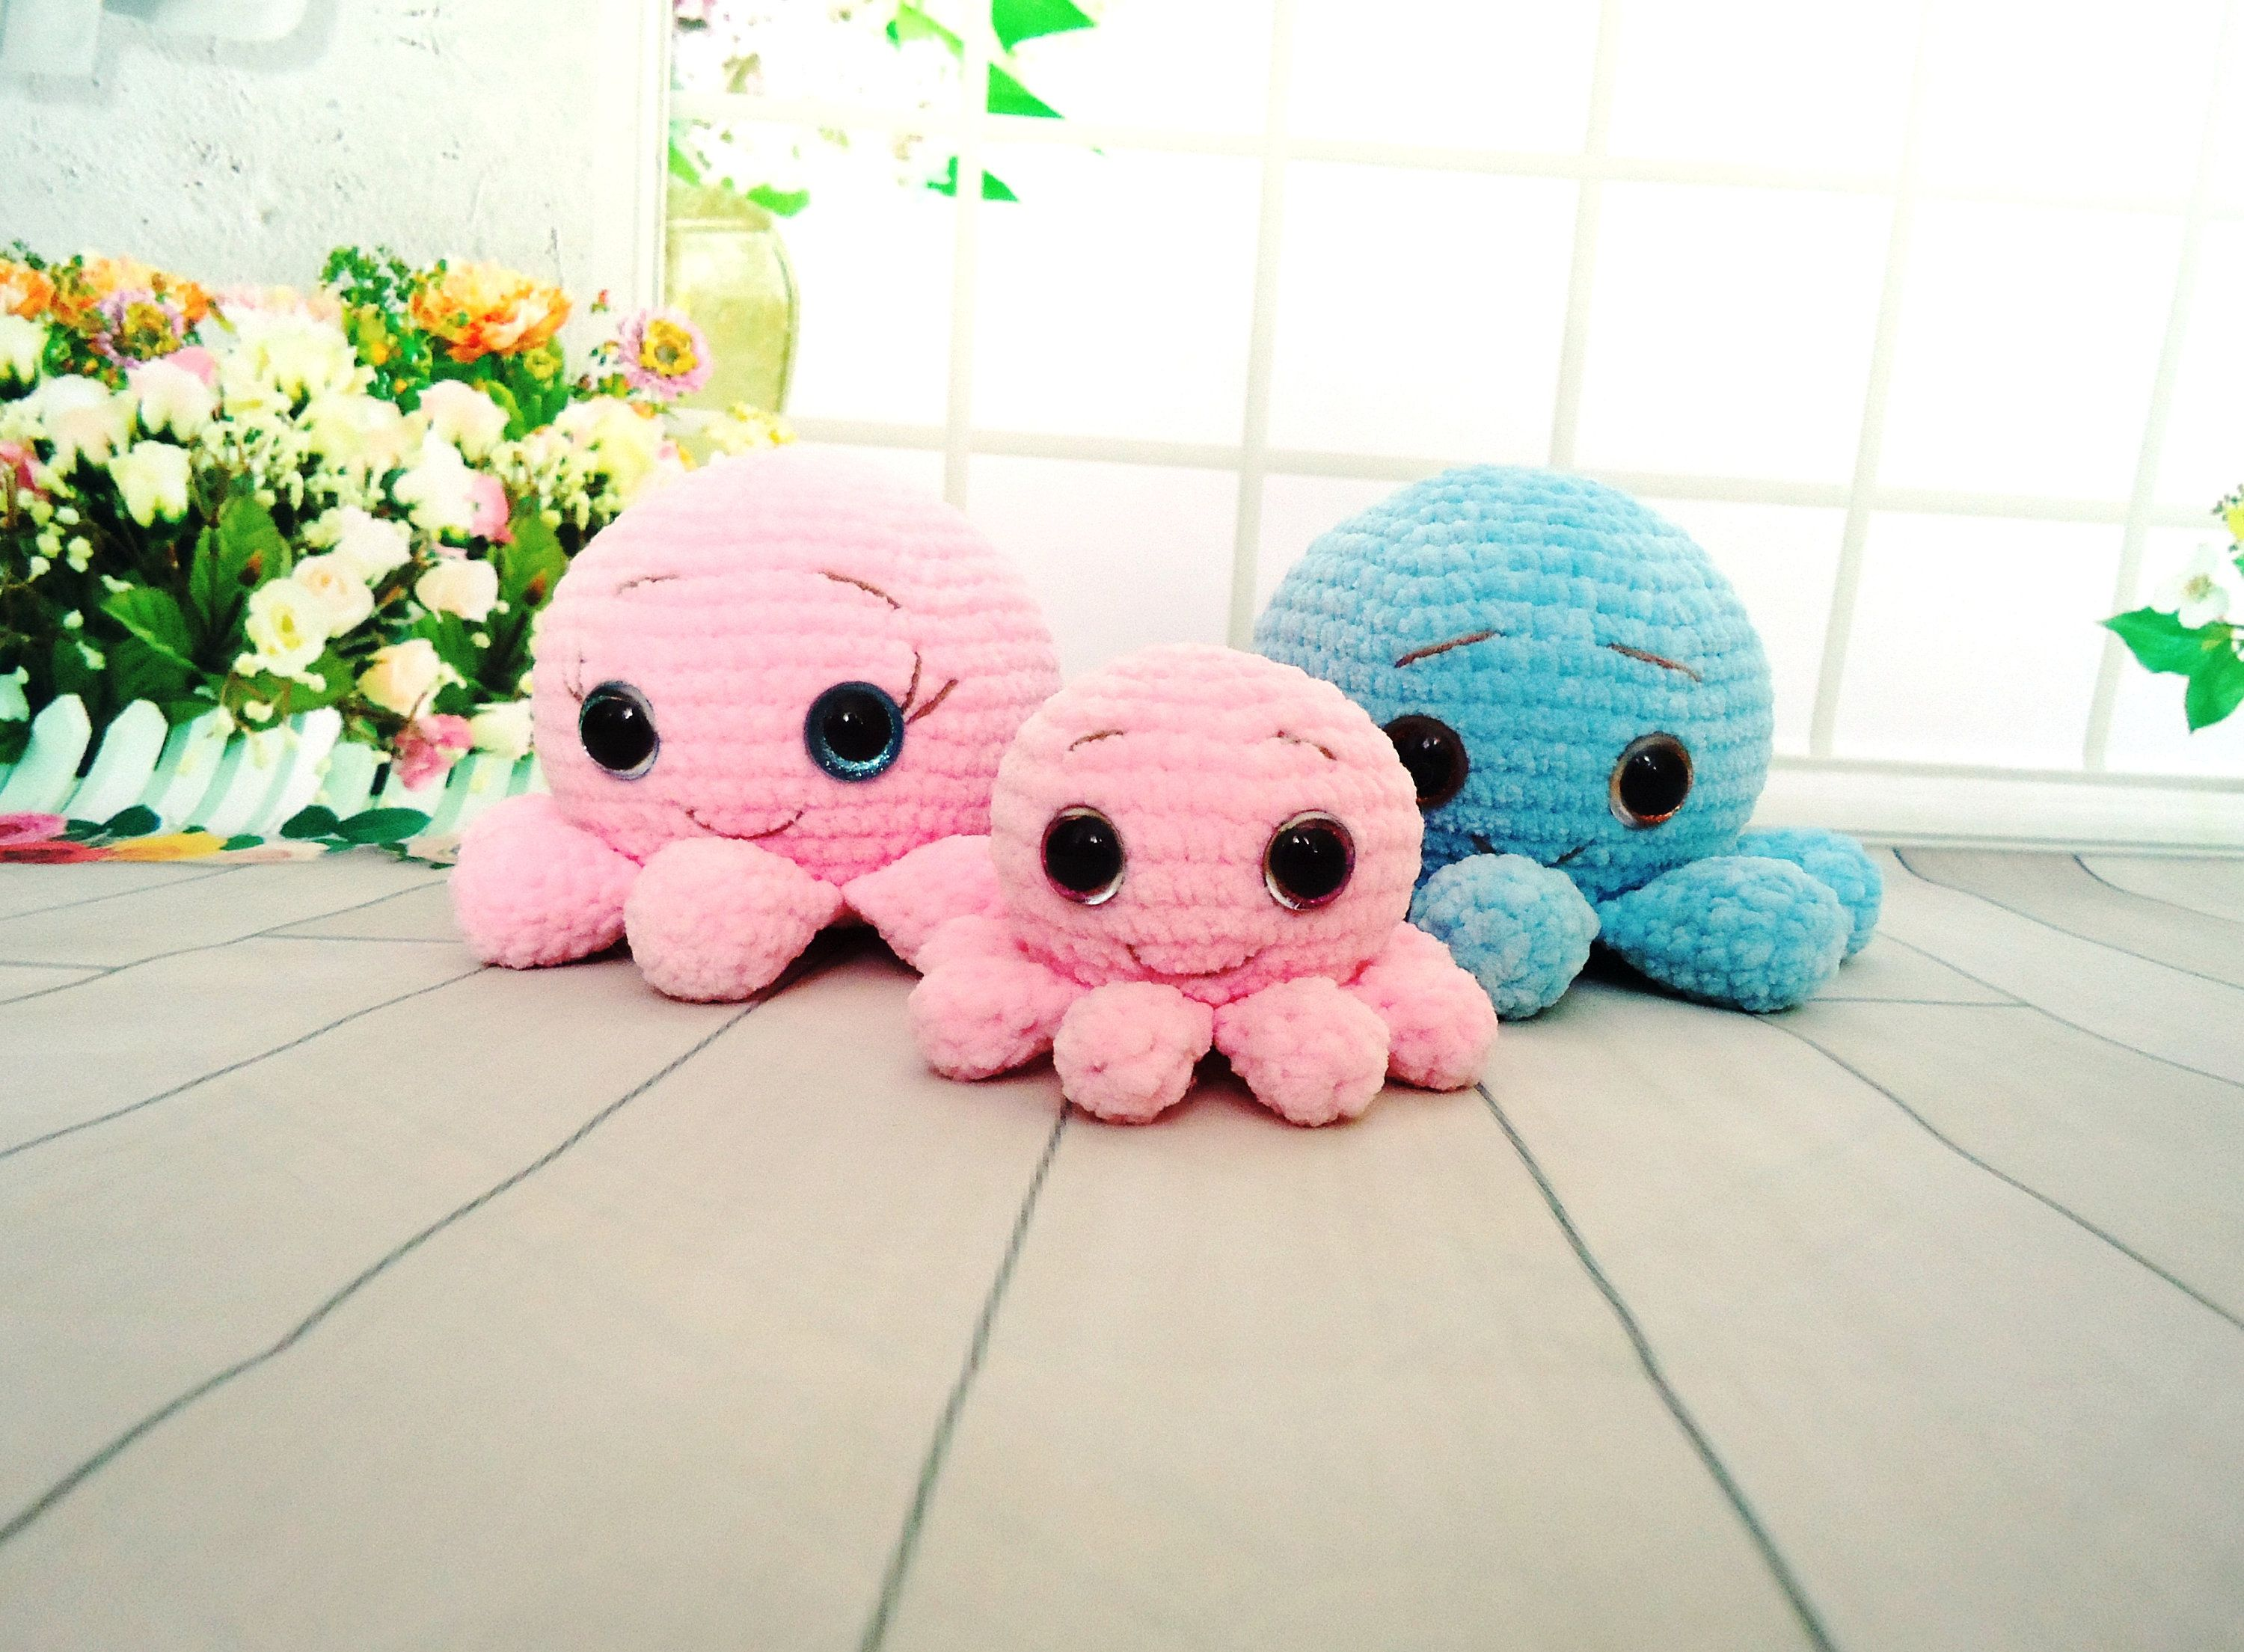 Crochet octopus family Amigurumi octopus Stuffed Octopus toy Plush Octopus